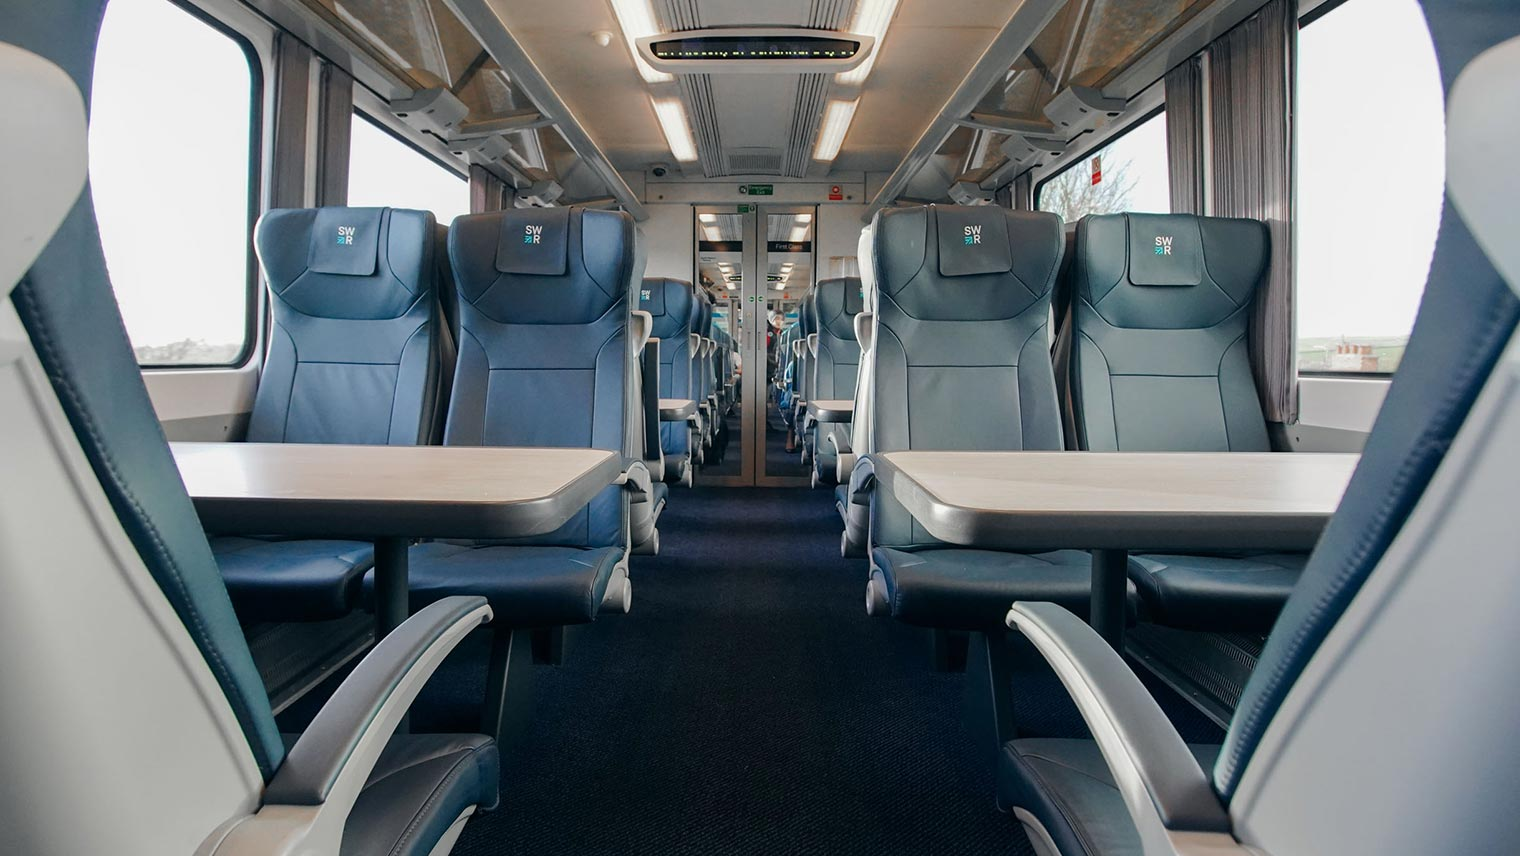 South Western Railway First Class interior